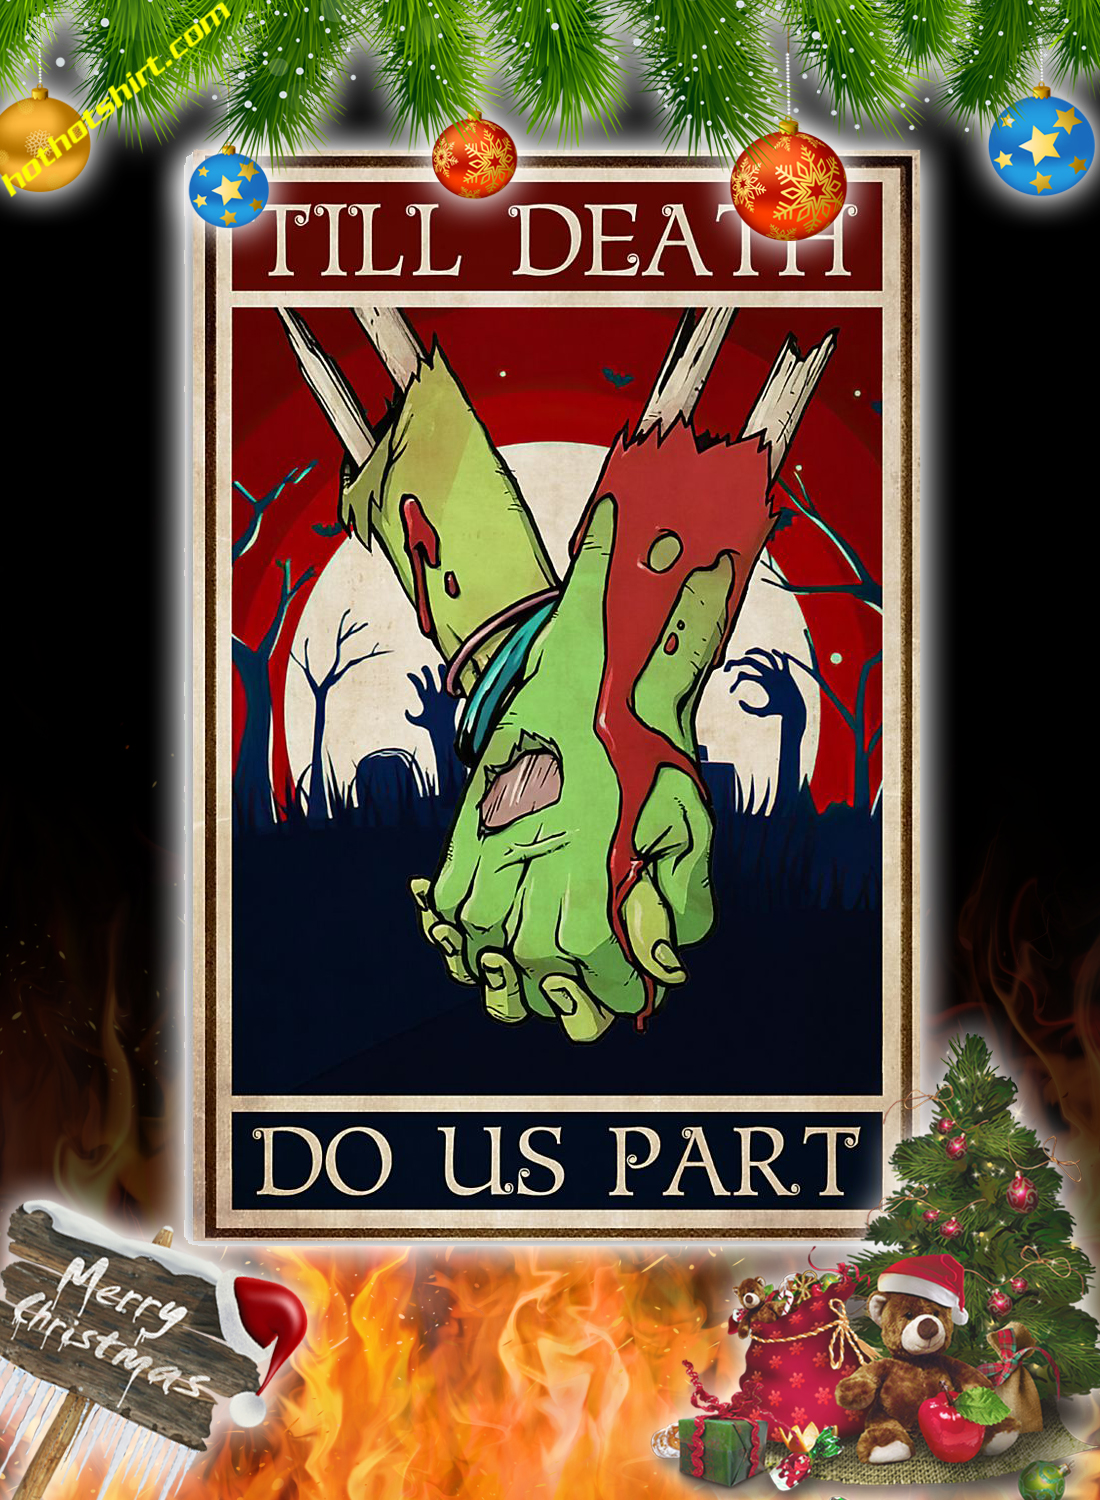 Zoombie till death do us part poster